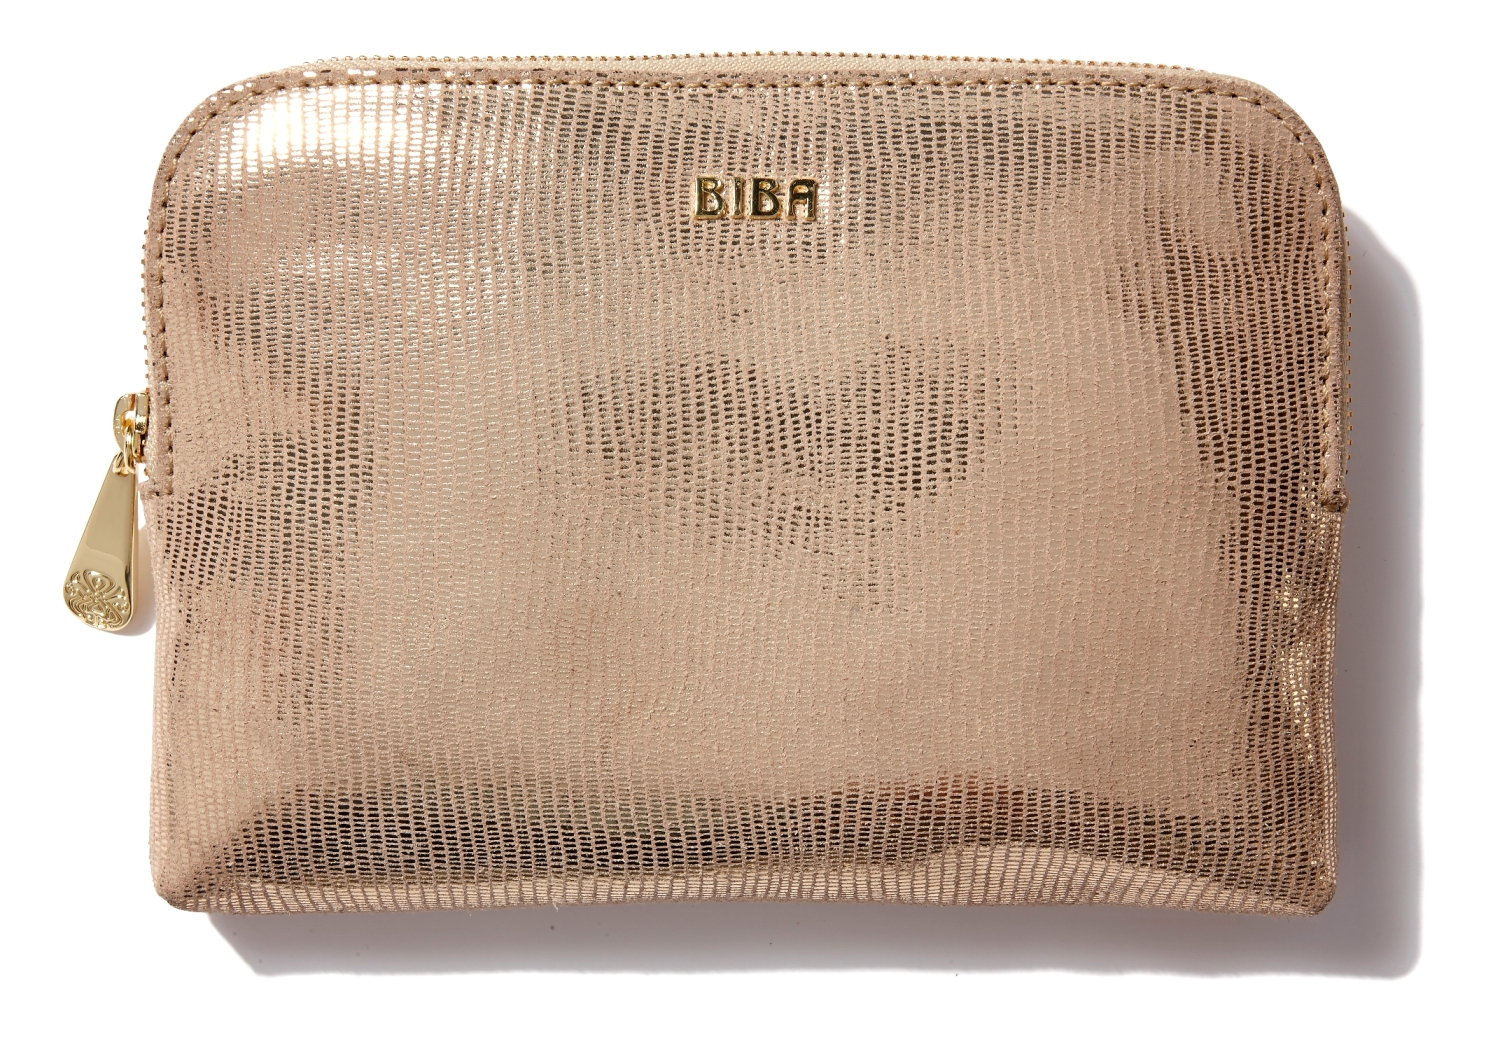 Biba makeup bag house of fraser mugeek vidalondon for Housse of fraser